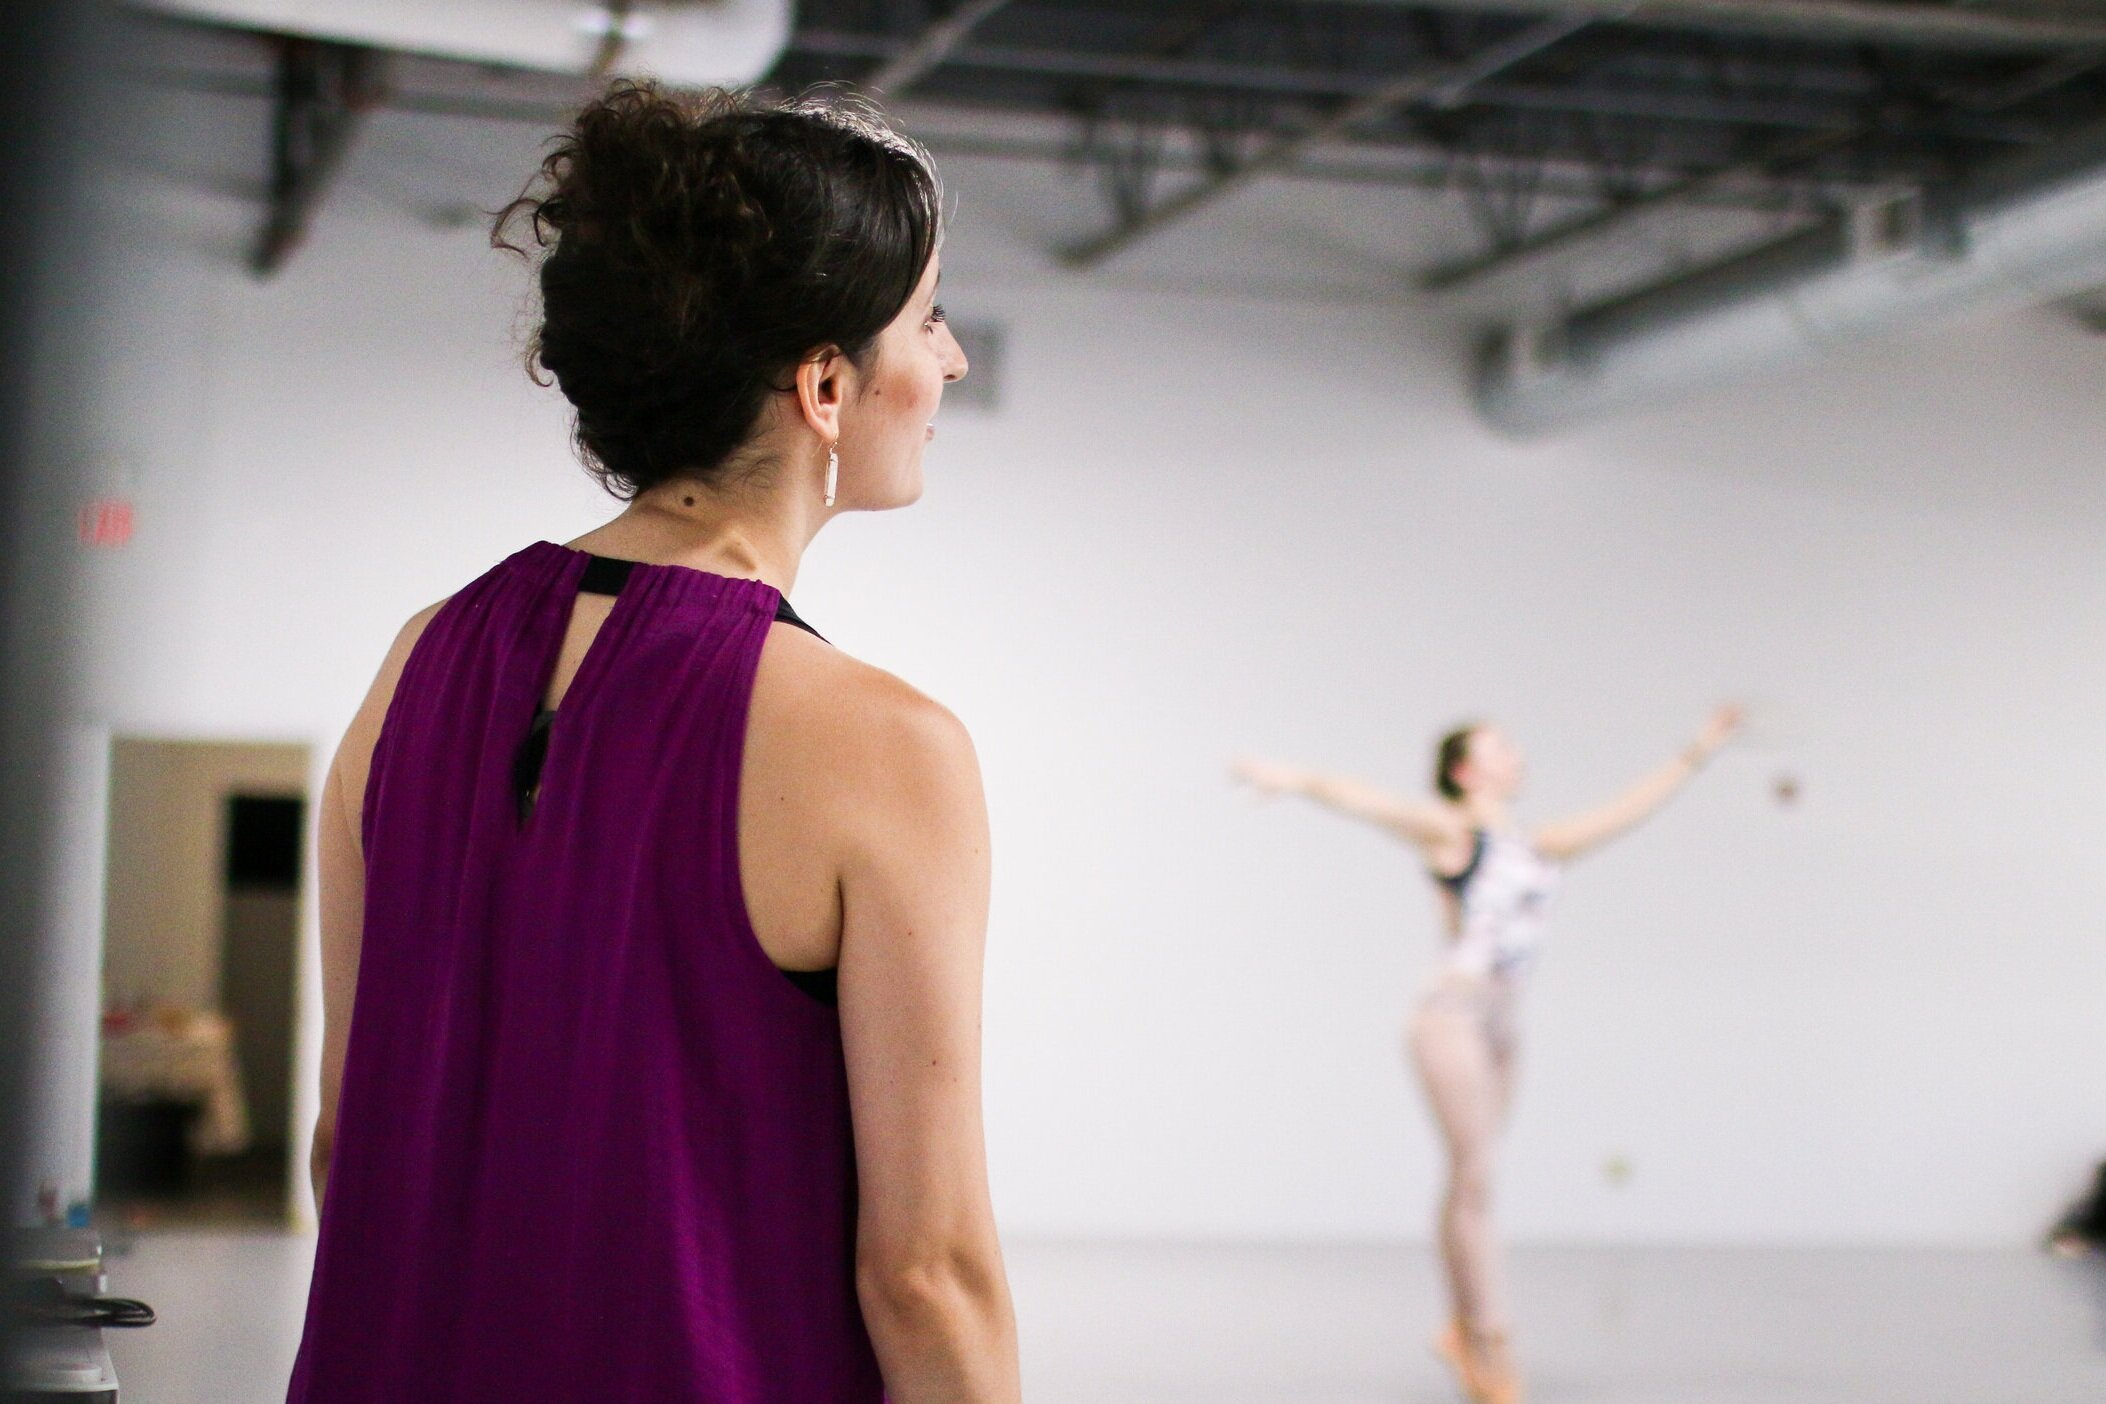 Faculty - Summer Intensive classes are taught by Ballet 5:8 Artistic Director Julianna Rubio Slager, Artists of the Ballet 5:8 Company, and world class guest instructors who bring a wealth of performing experience and knowledge to their classrooms.